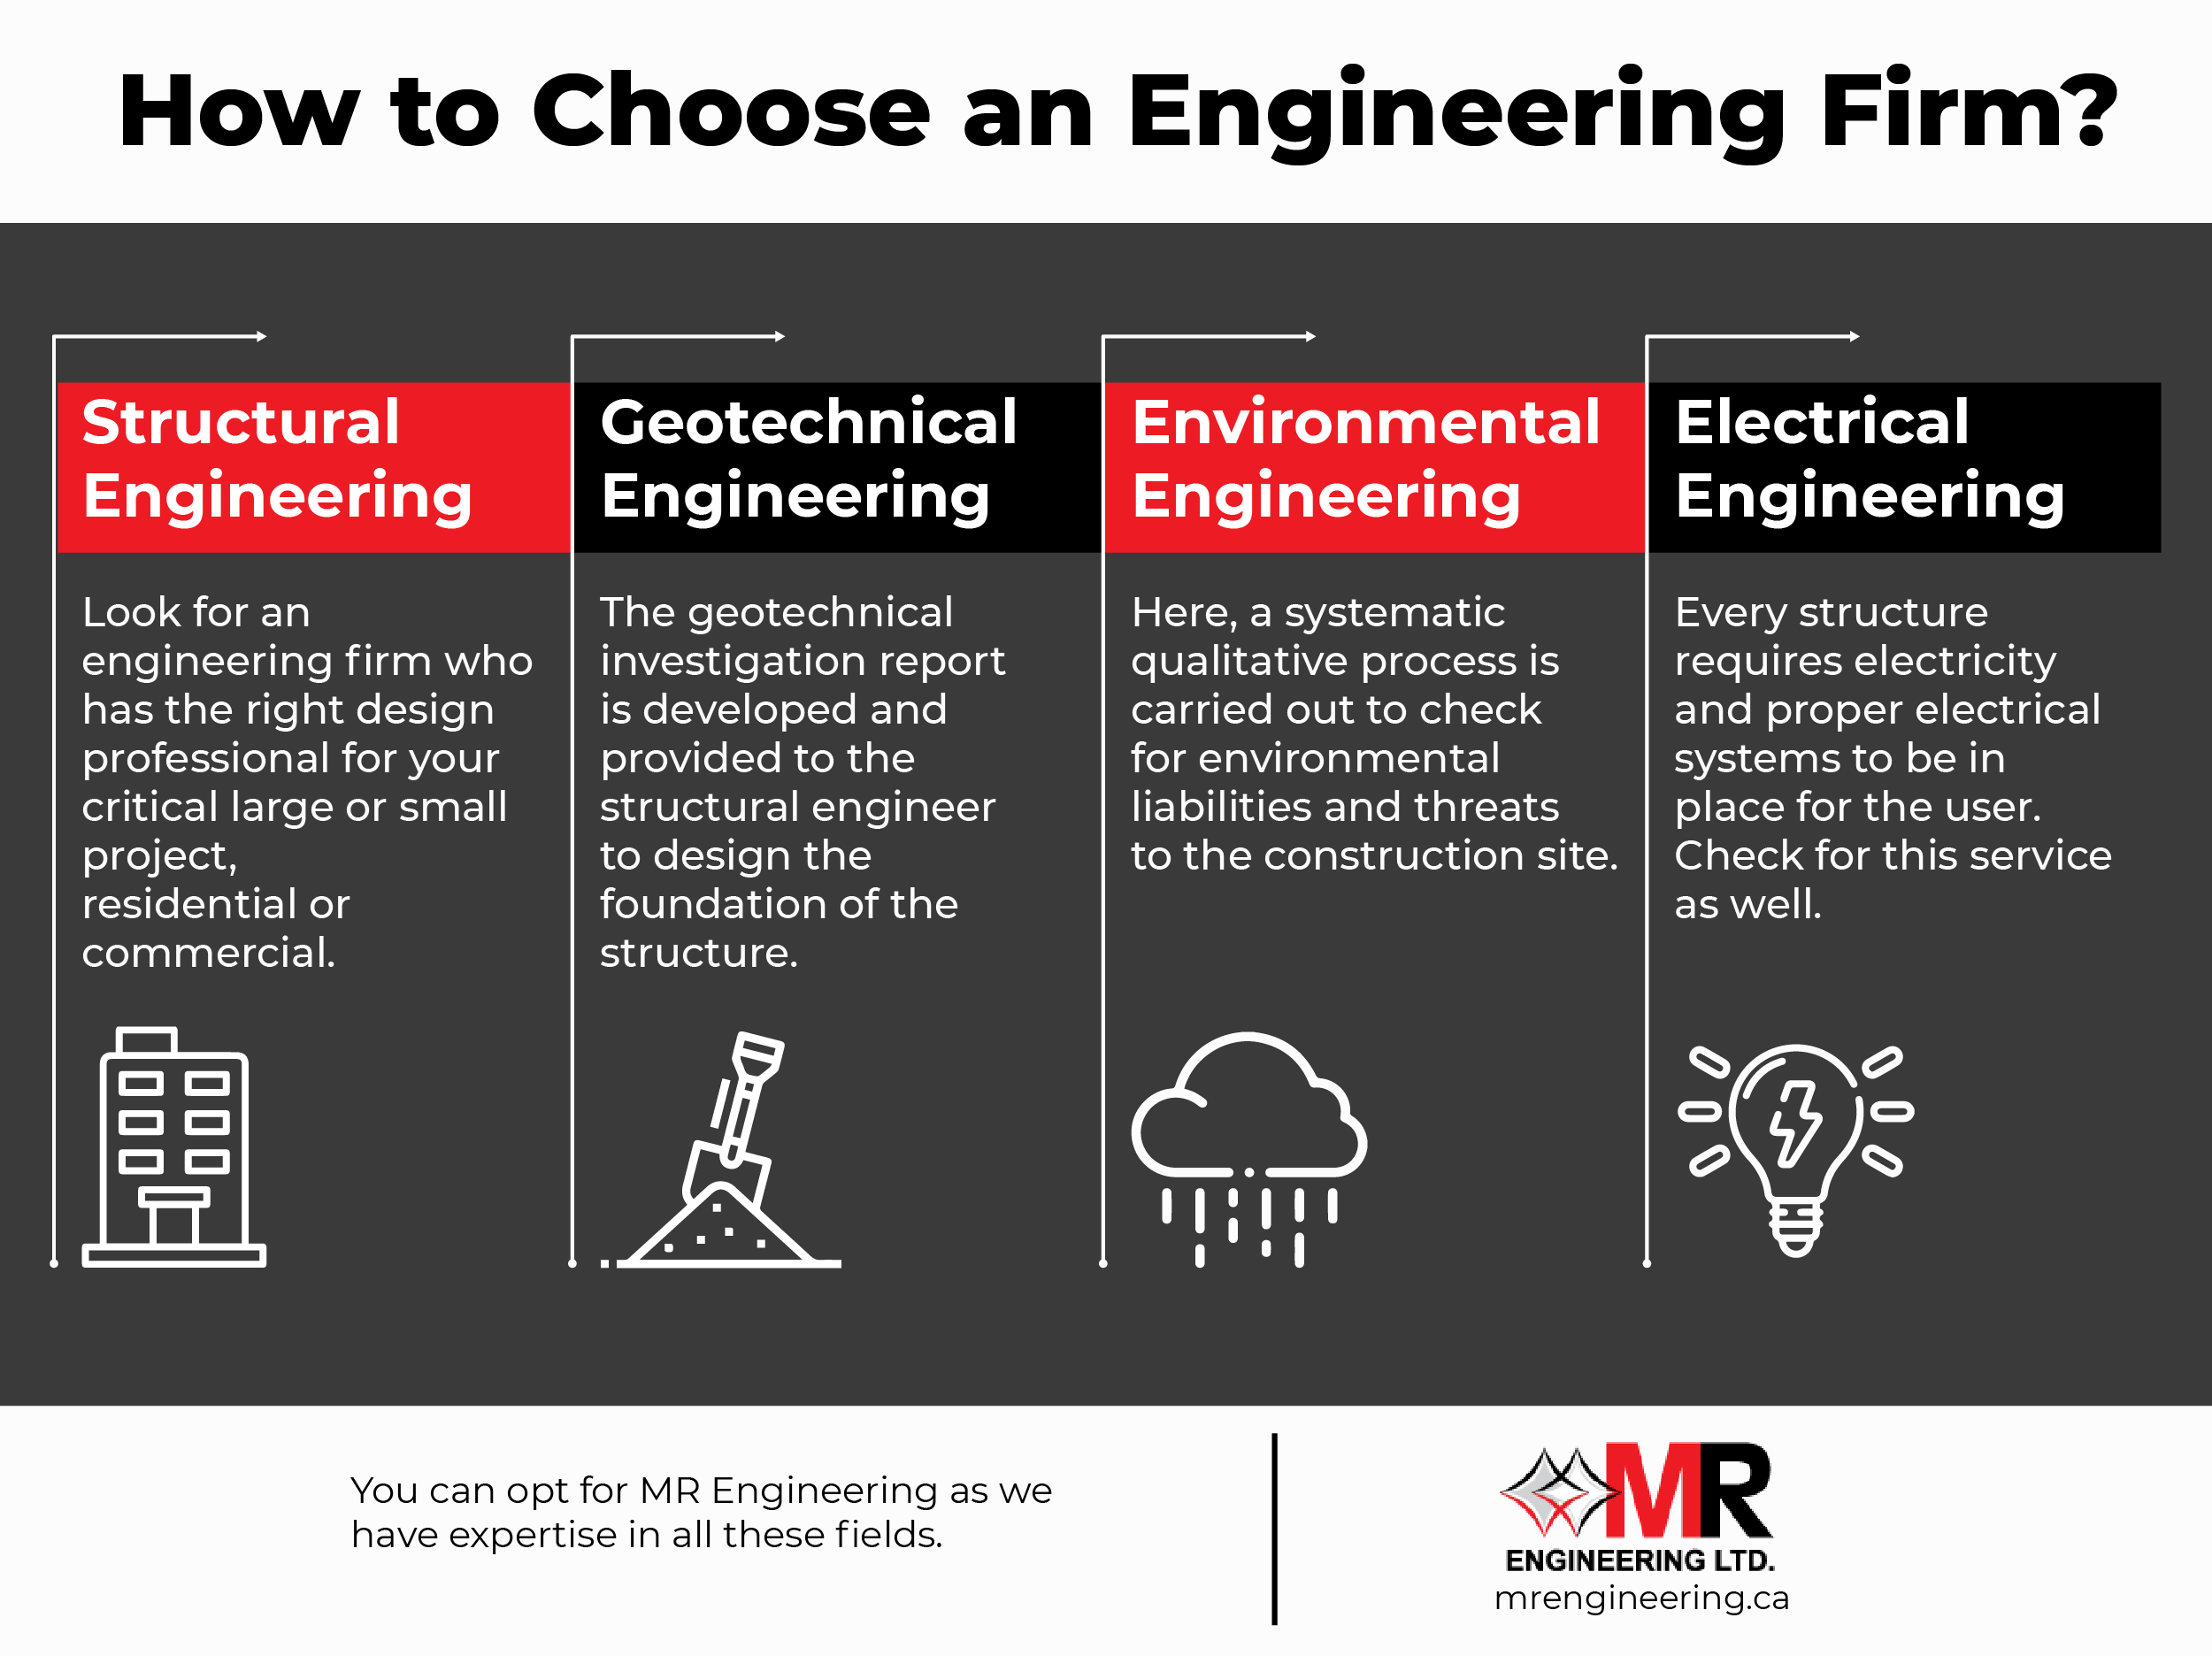 Choose an Engineering Firm